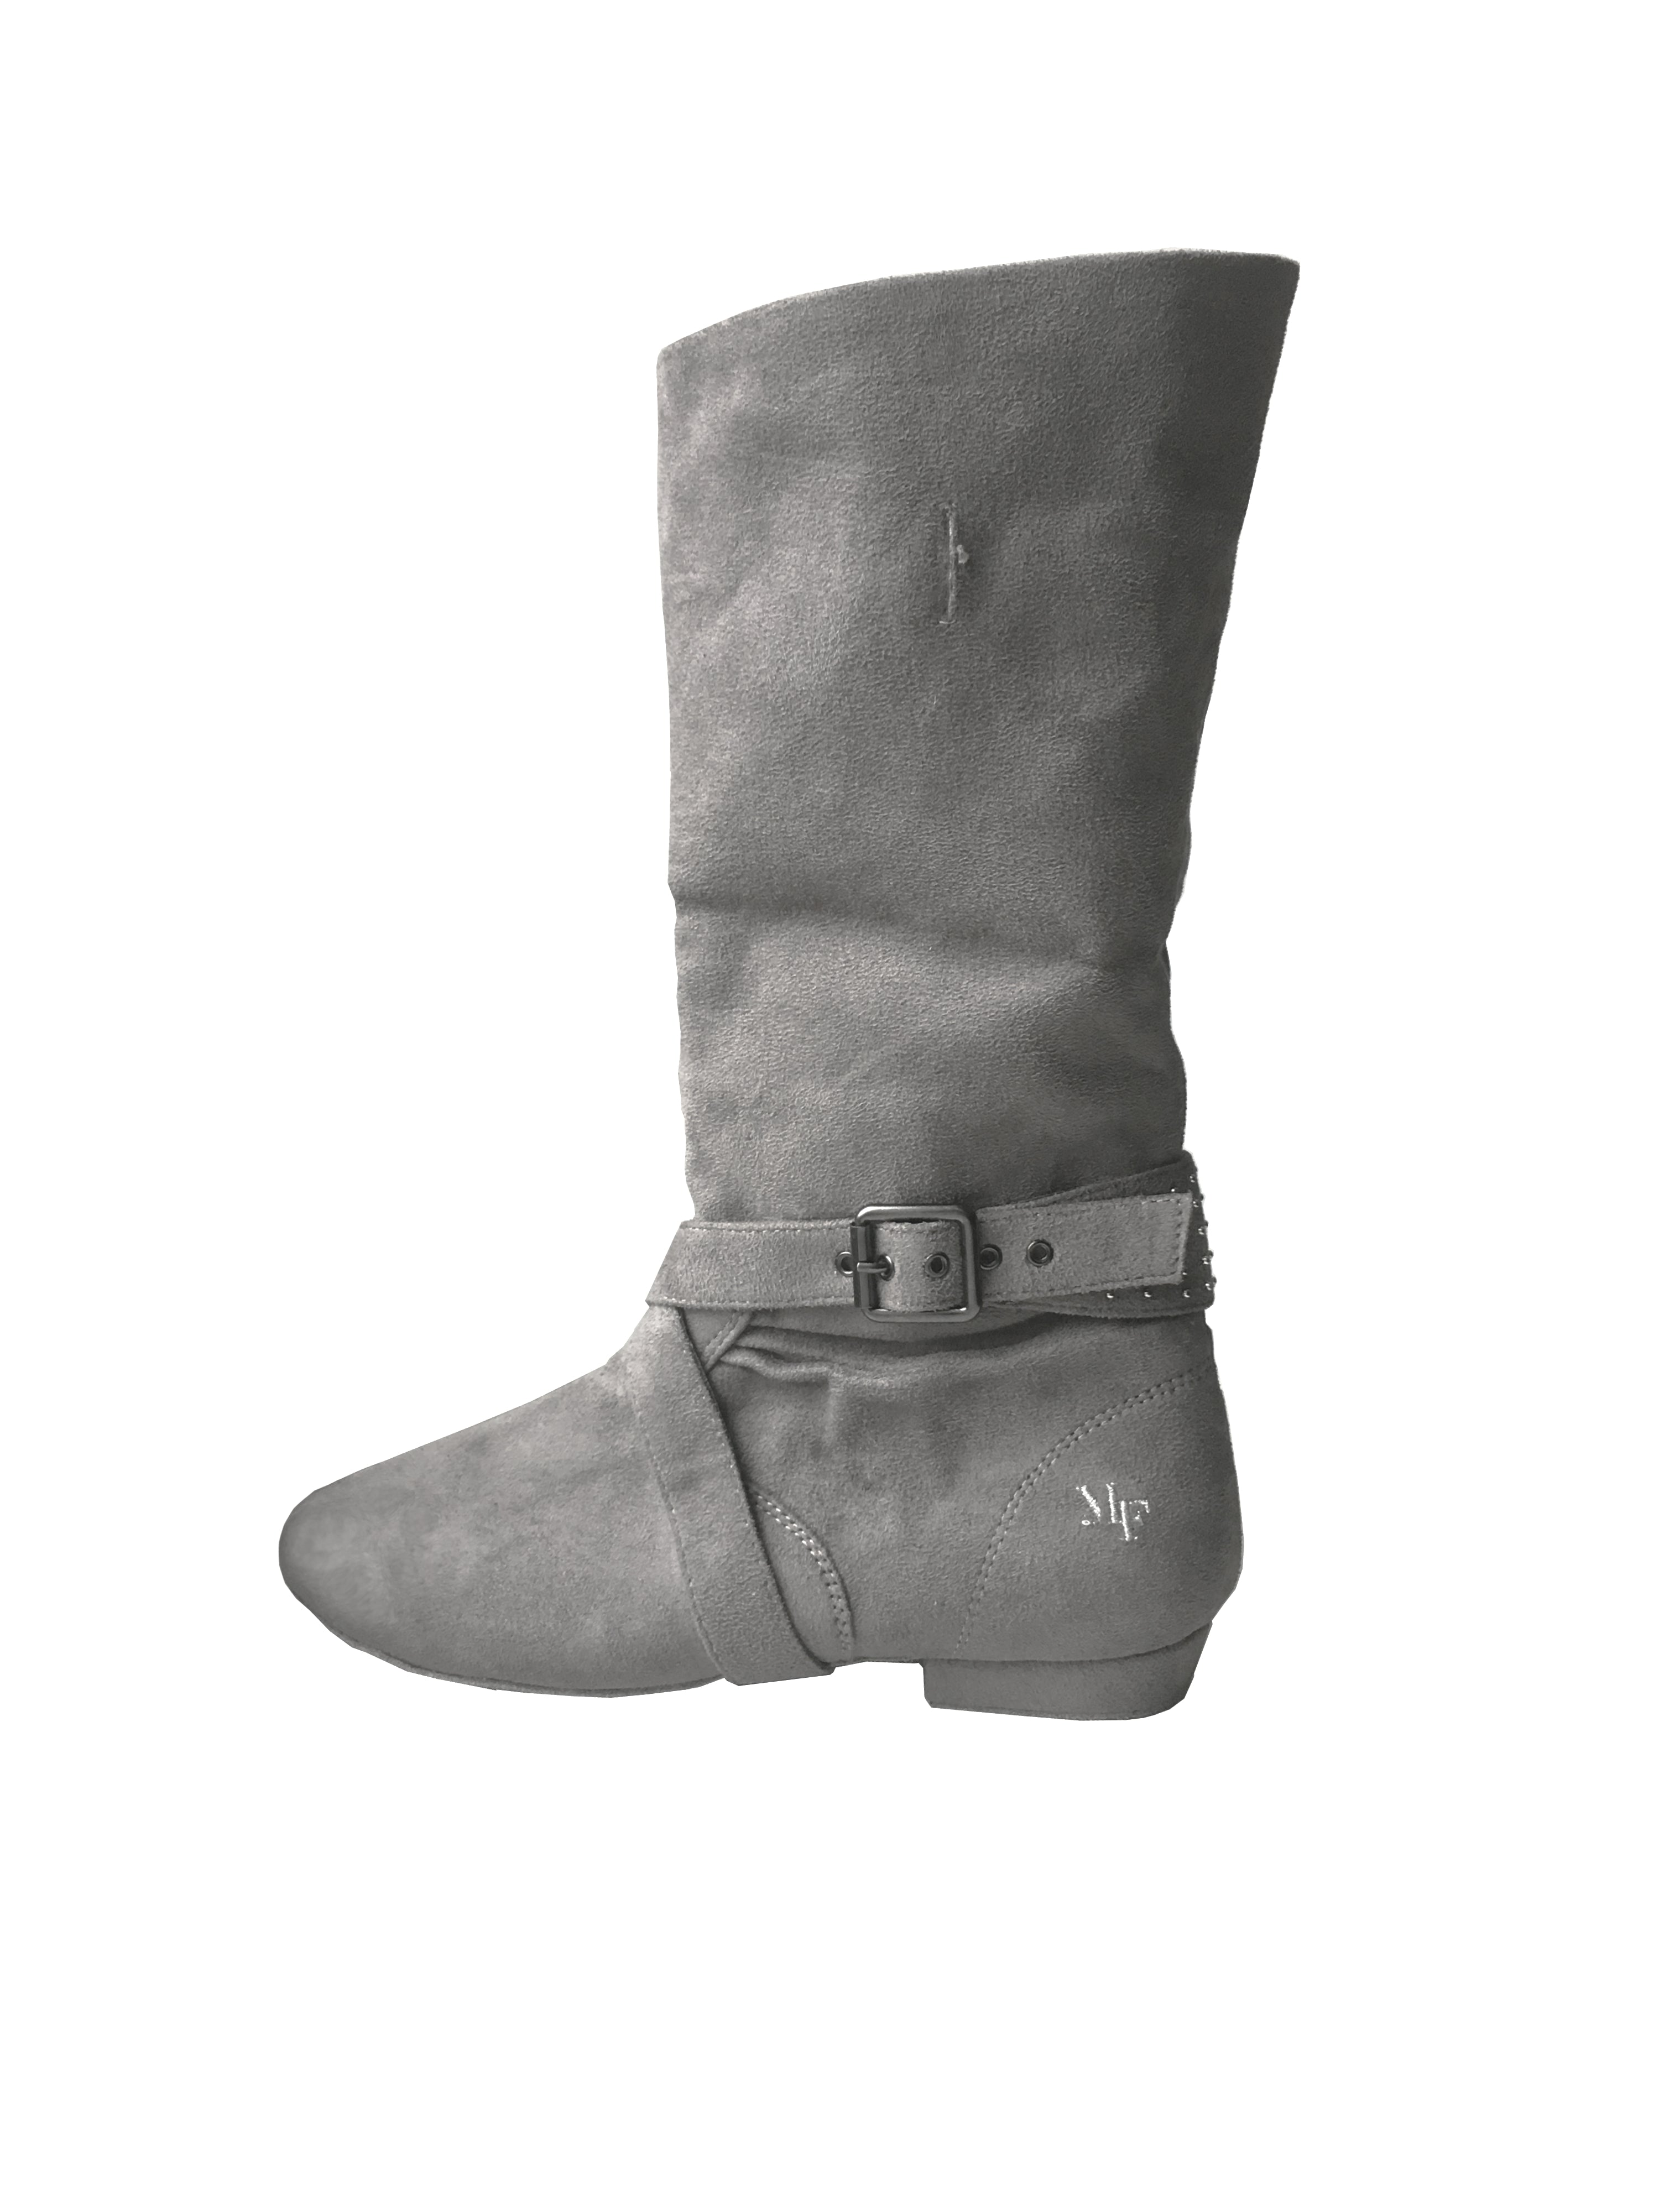 Aurora dance boot grey left side folded up